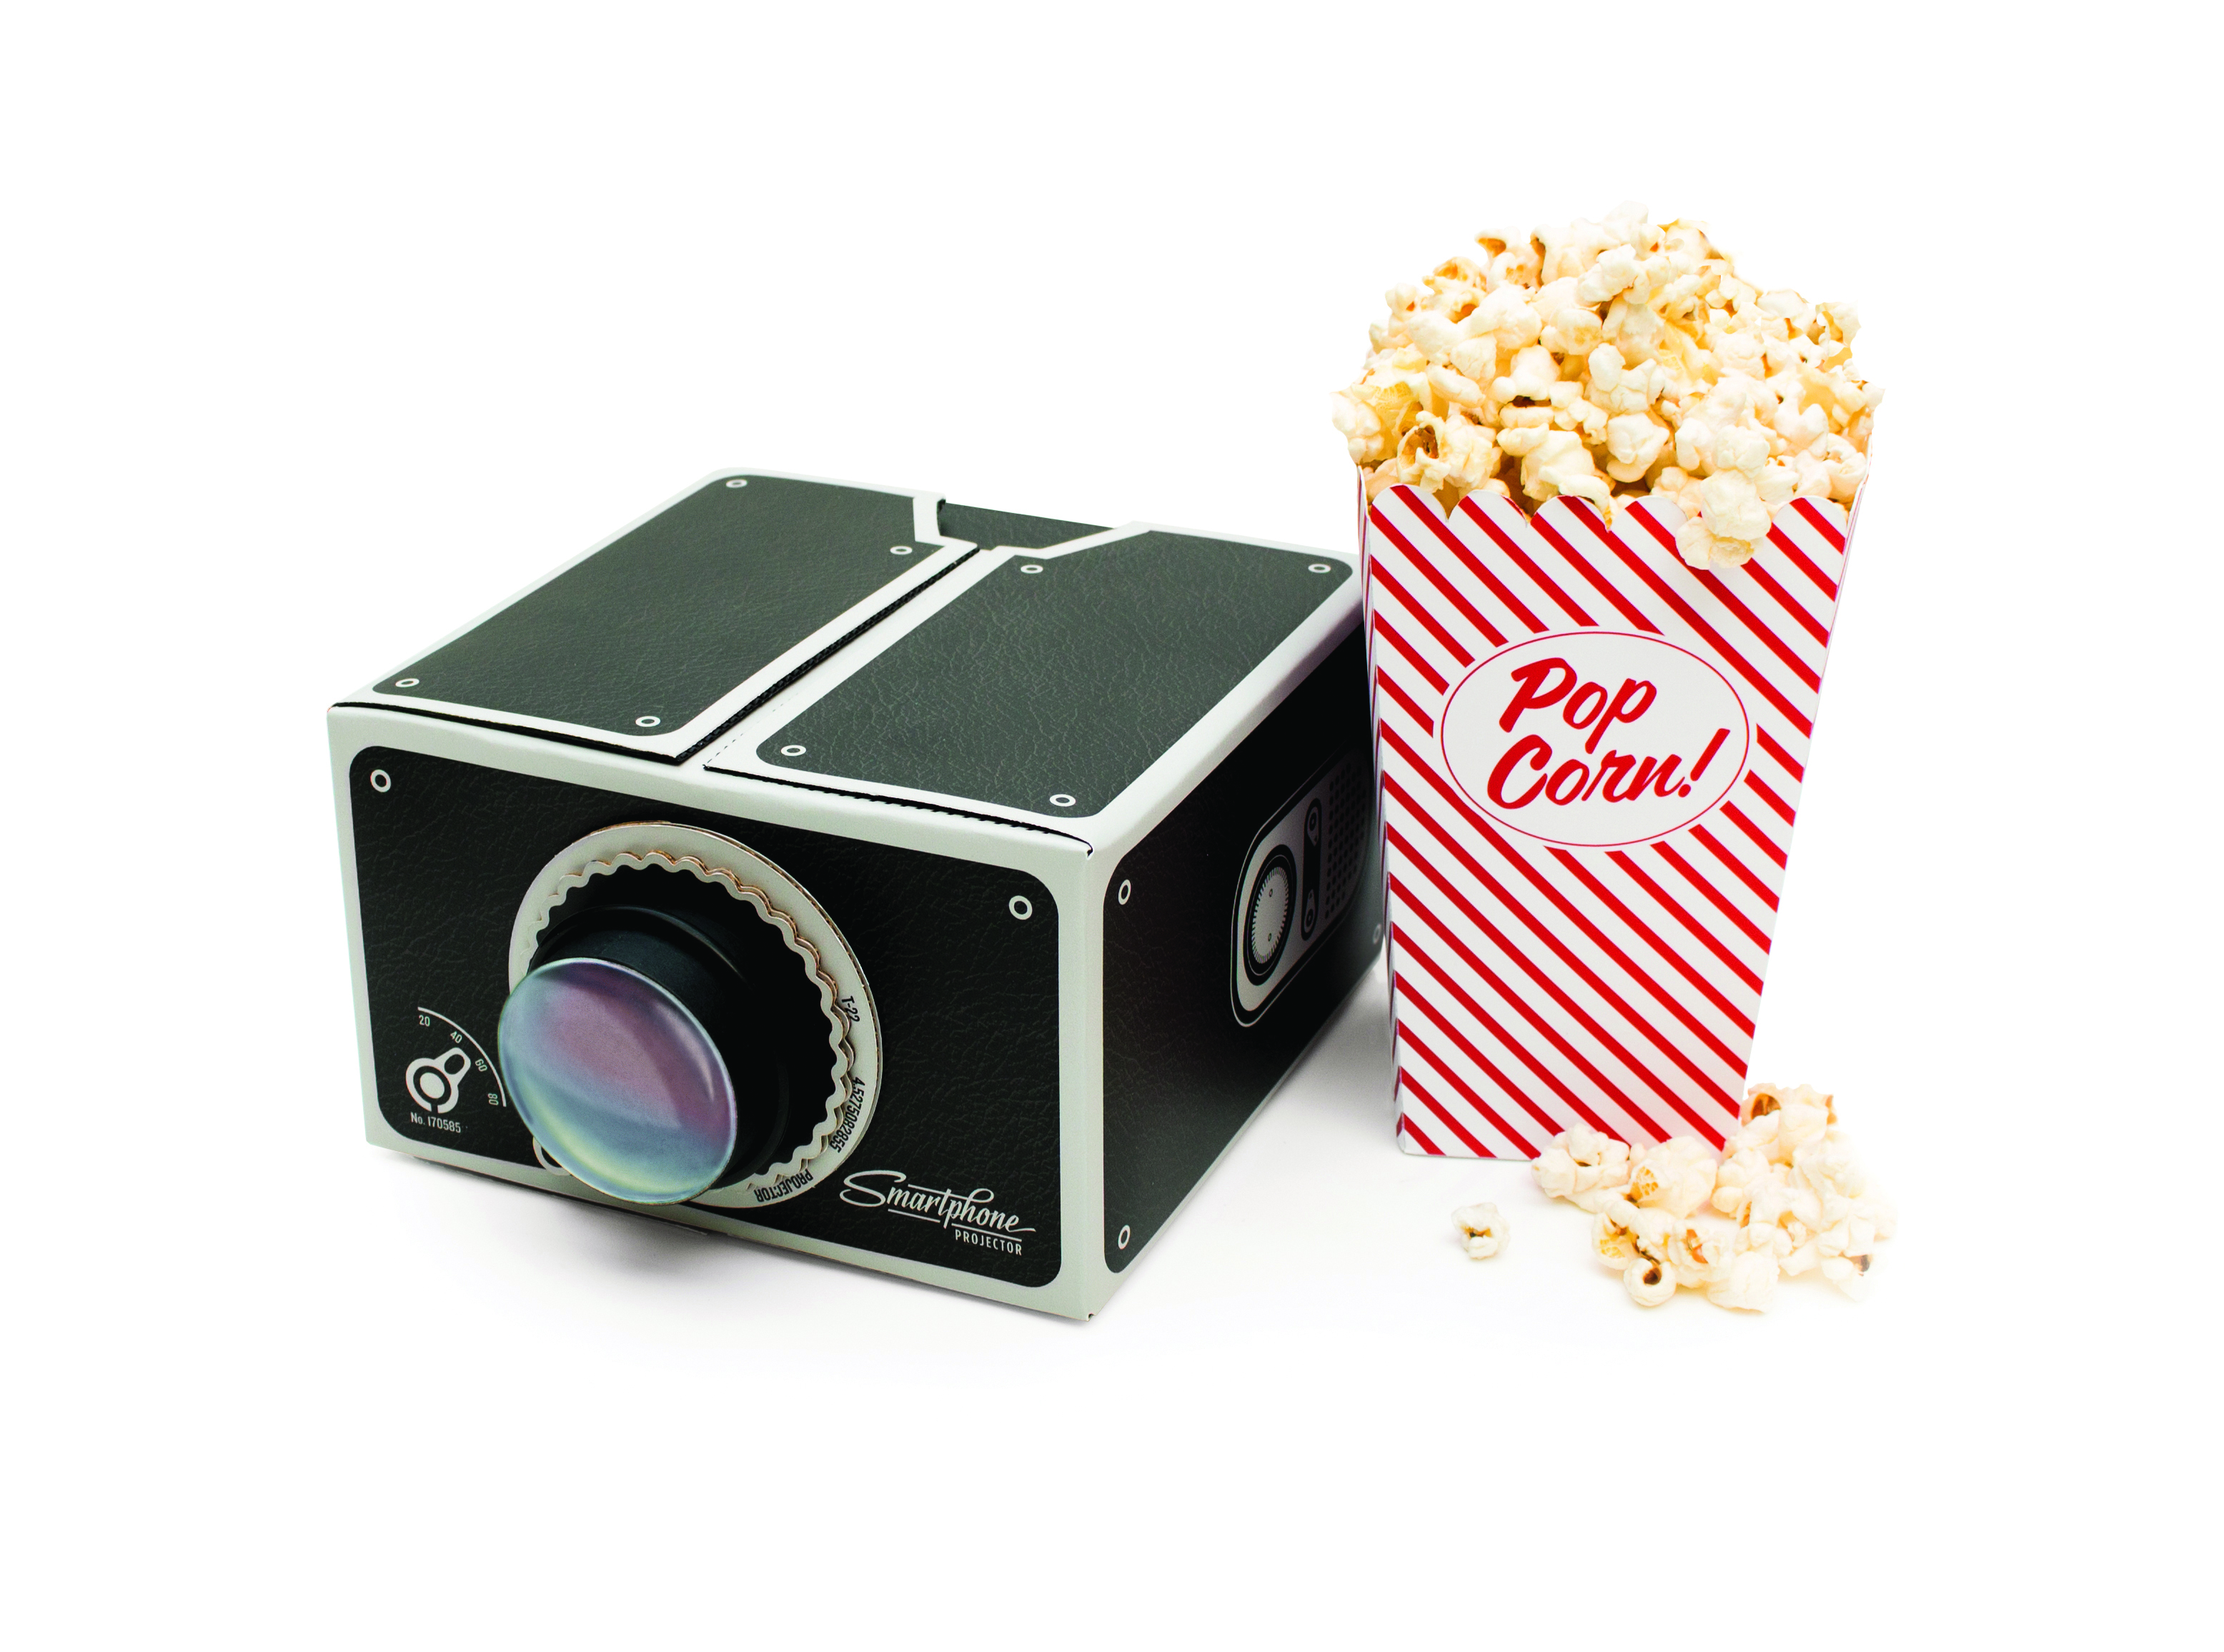 Smartphone Projector with popcorn 1